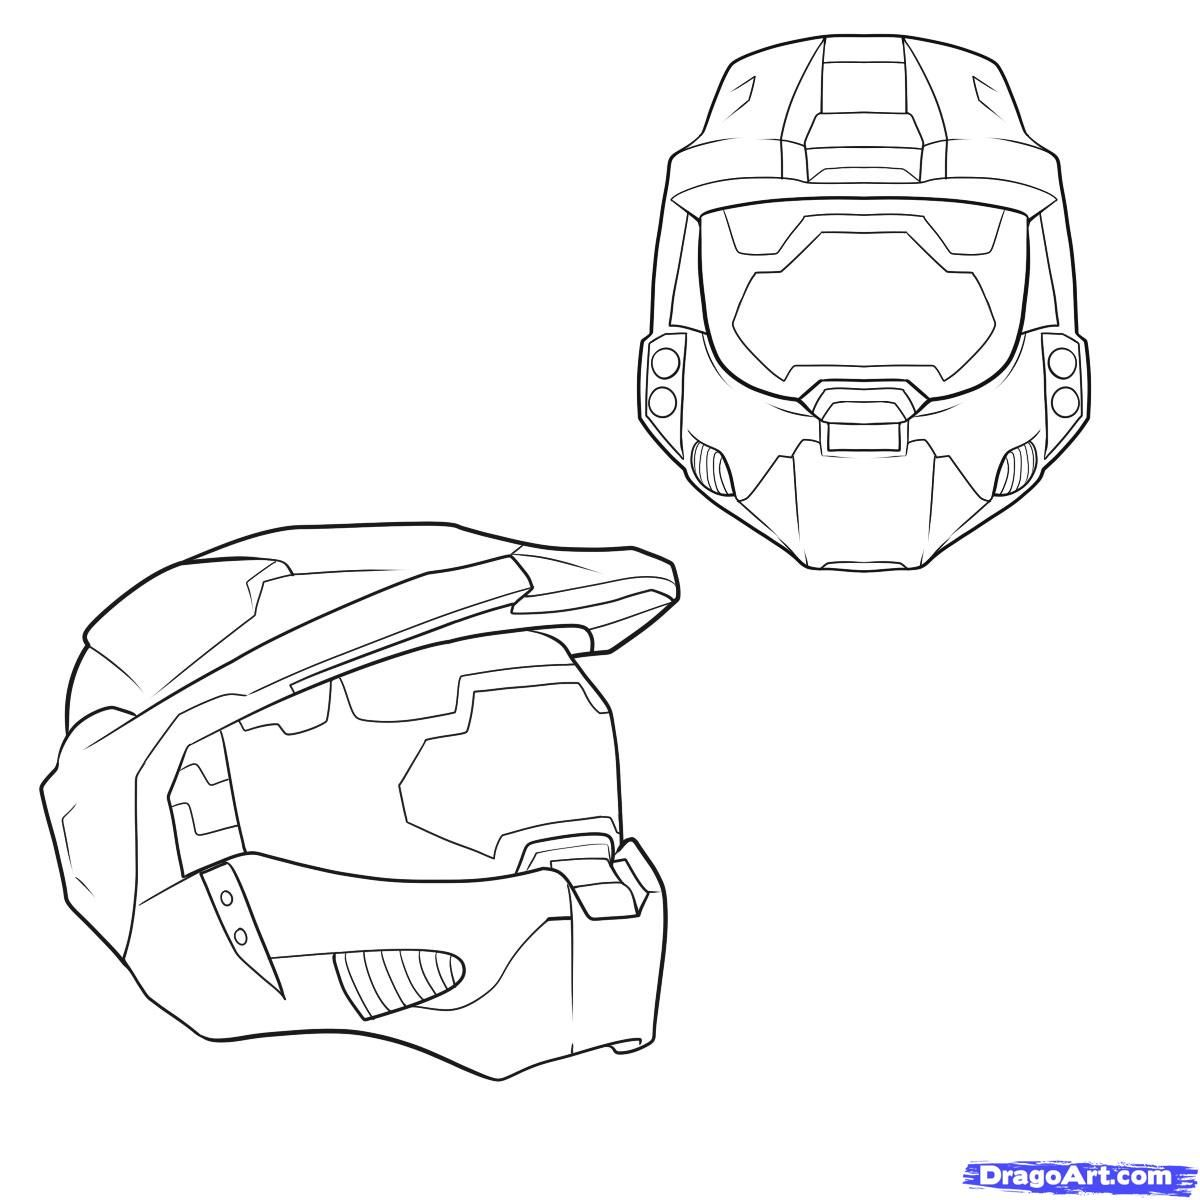 1200x1200 How To Draw A Halo Helmet, Step